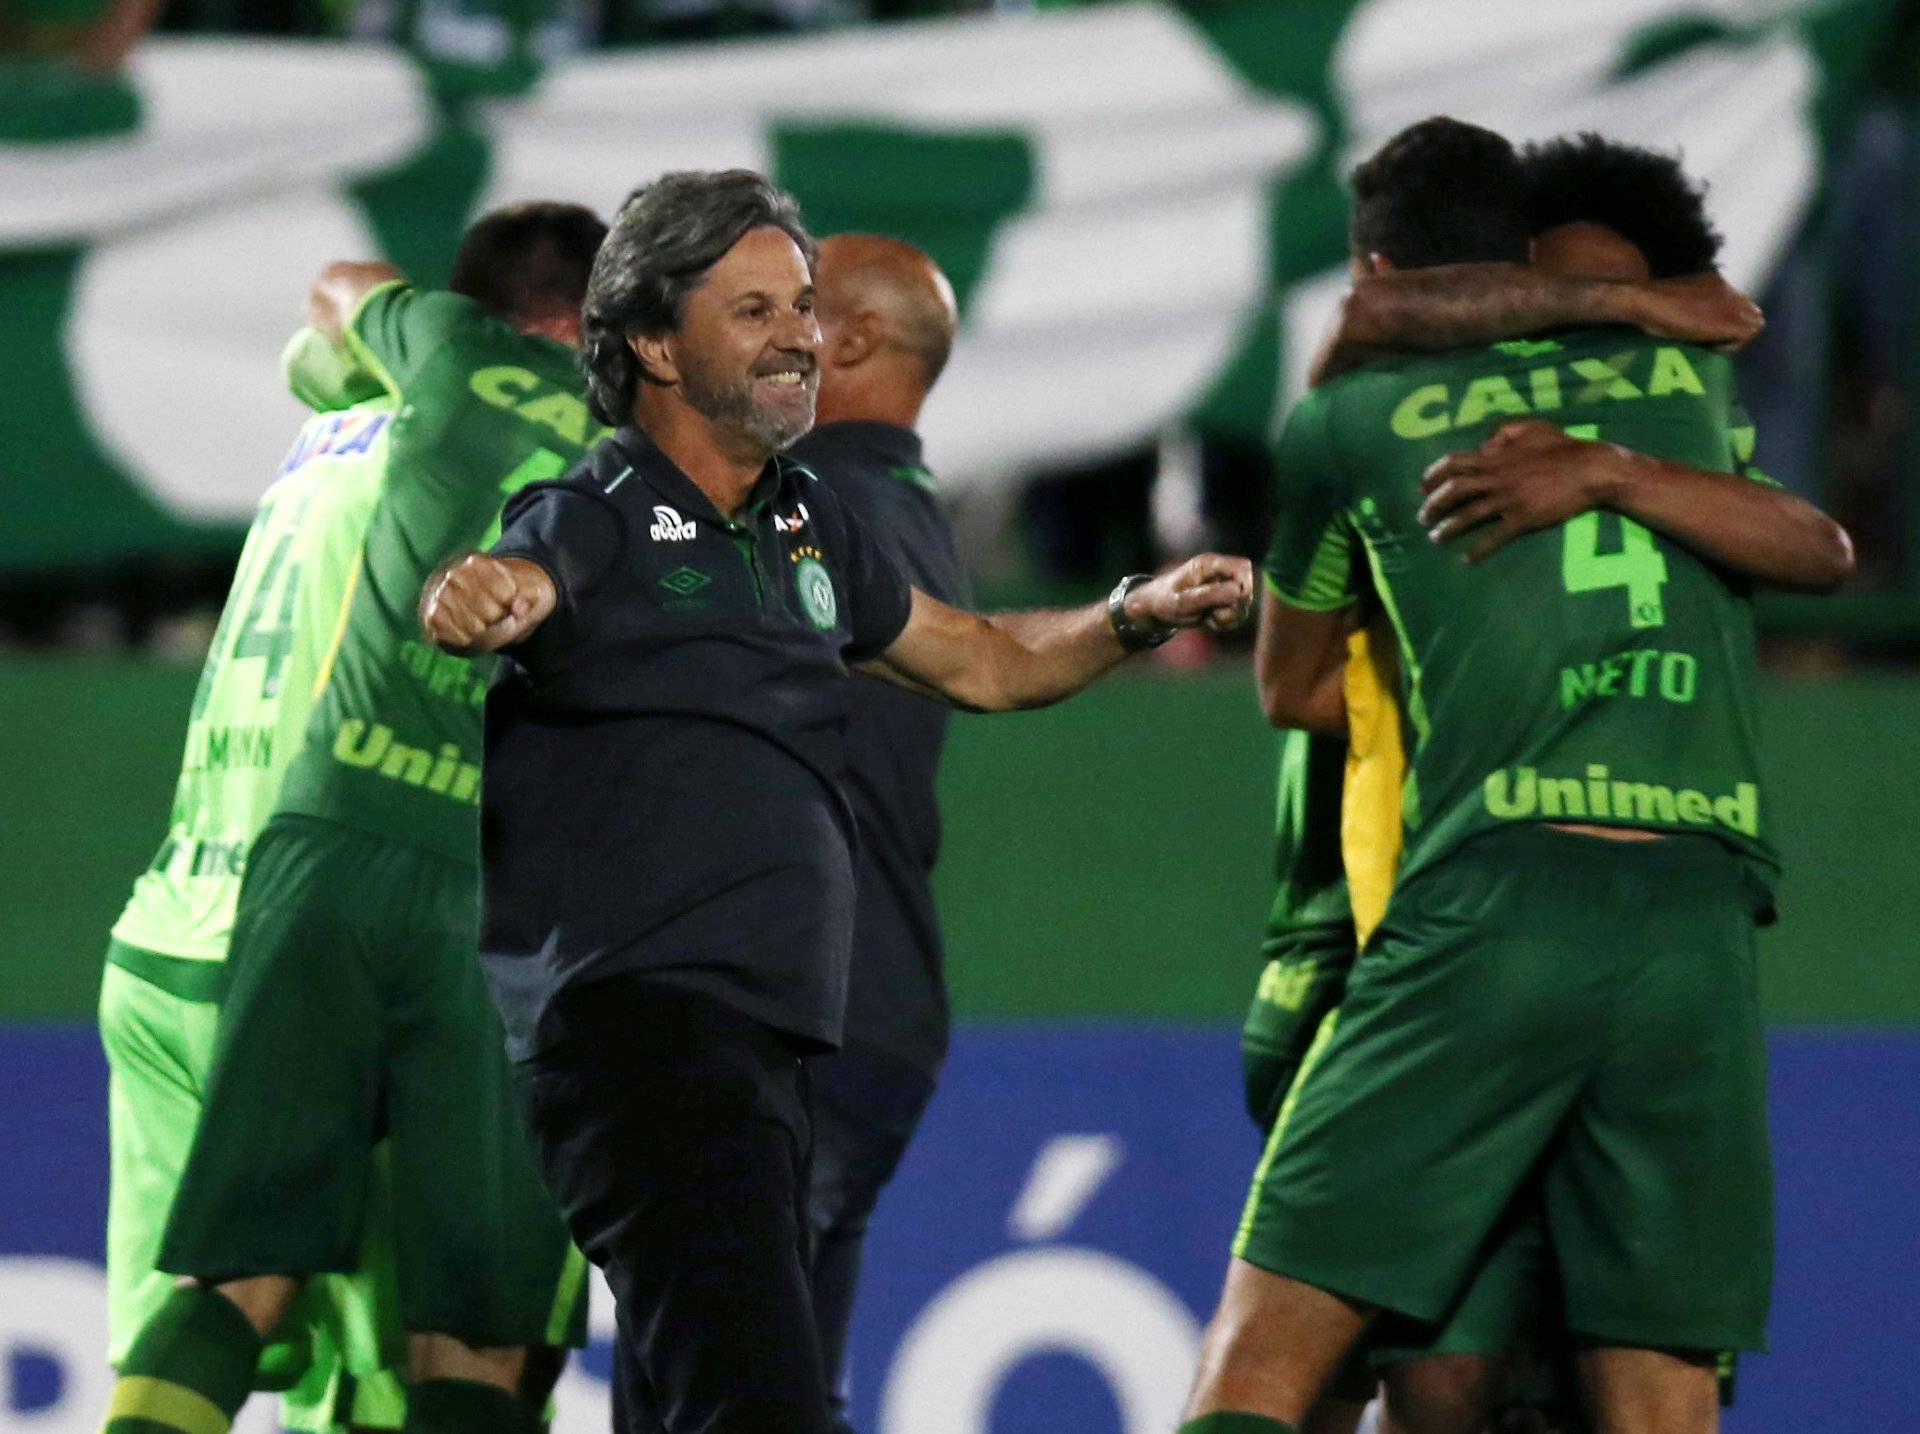 File picture of head coach Caio Junior of Chapecoense celebrating with his players after their match against San Lorenzo  in the Copa Sudamericana at the Arena Conda stadium in Chapeco